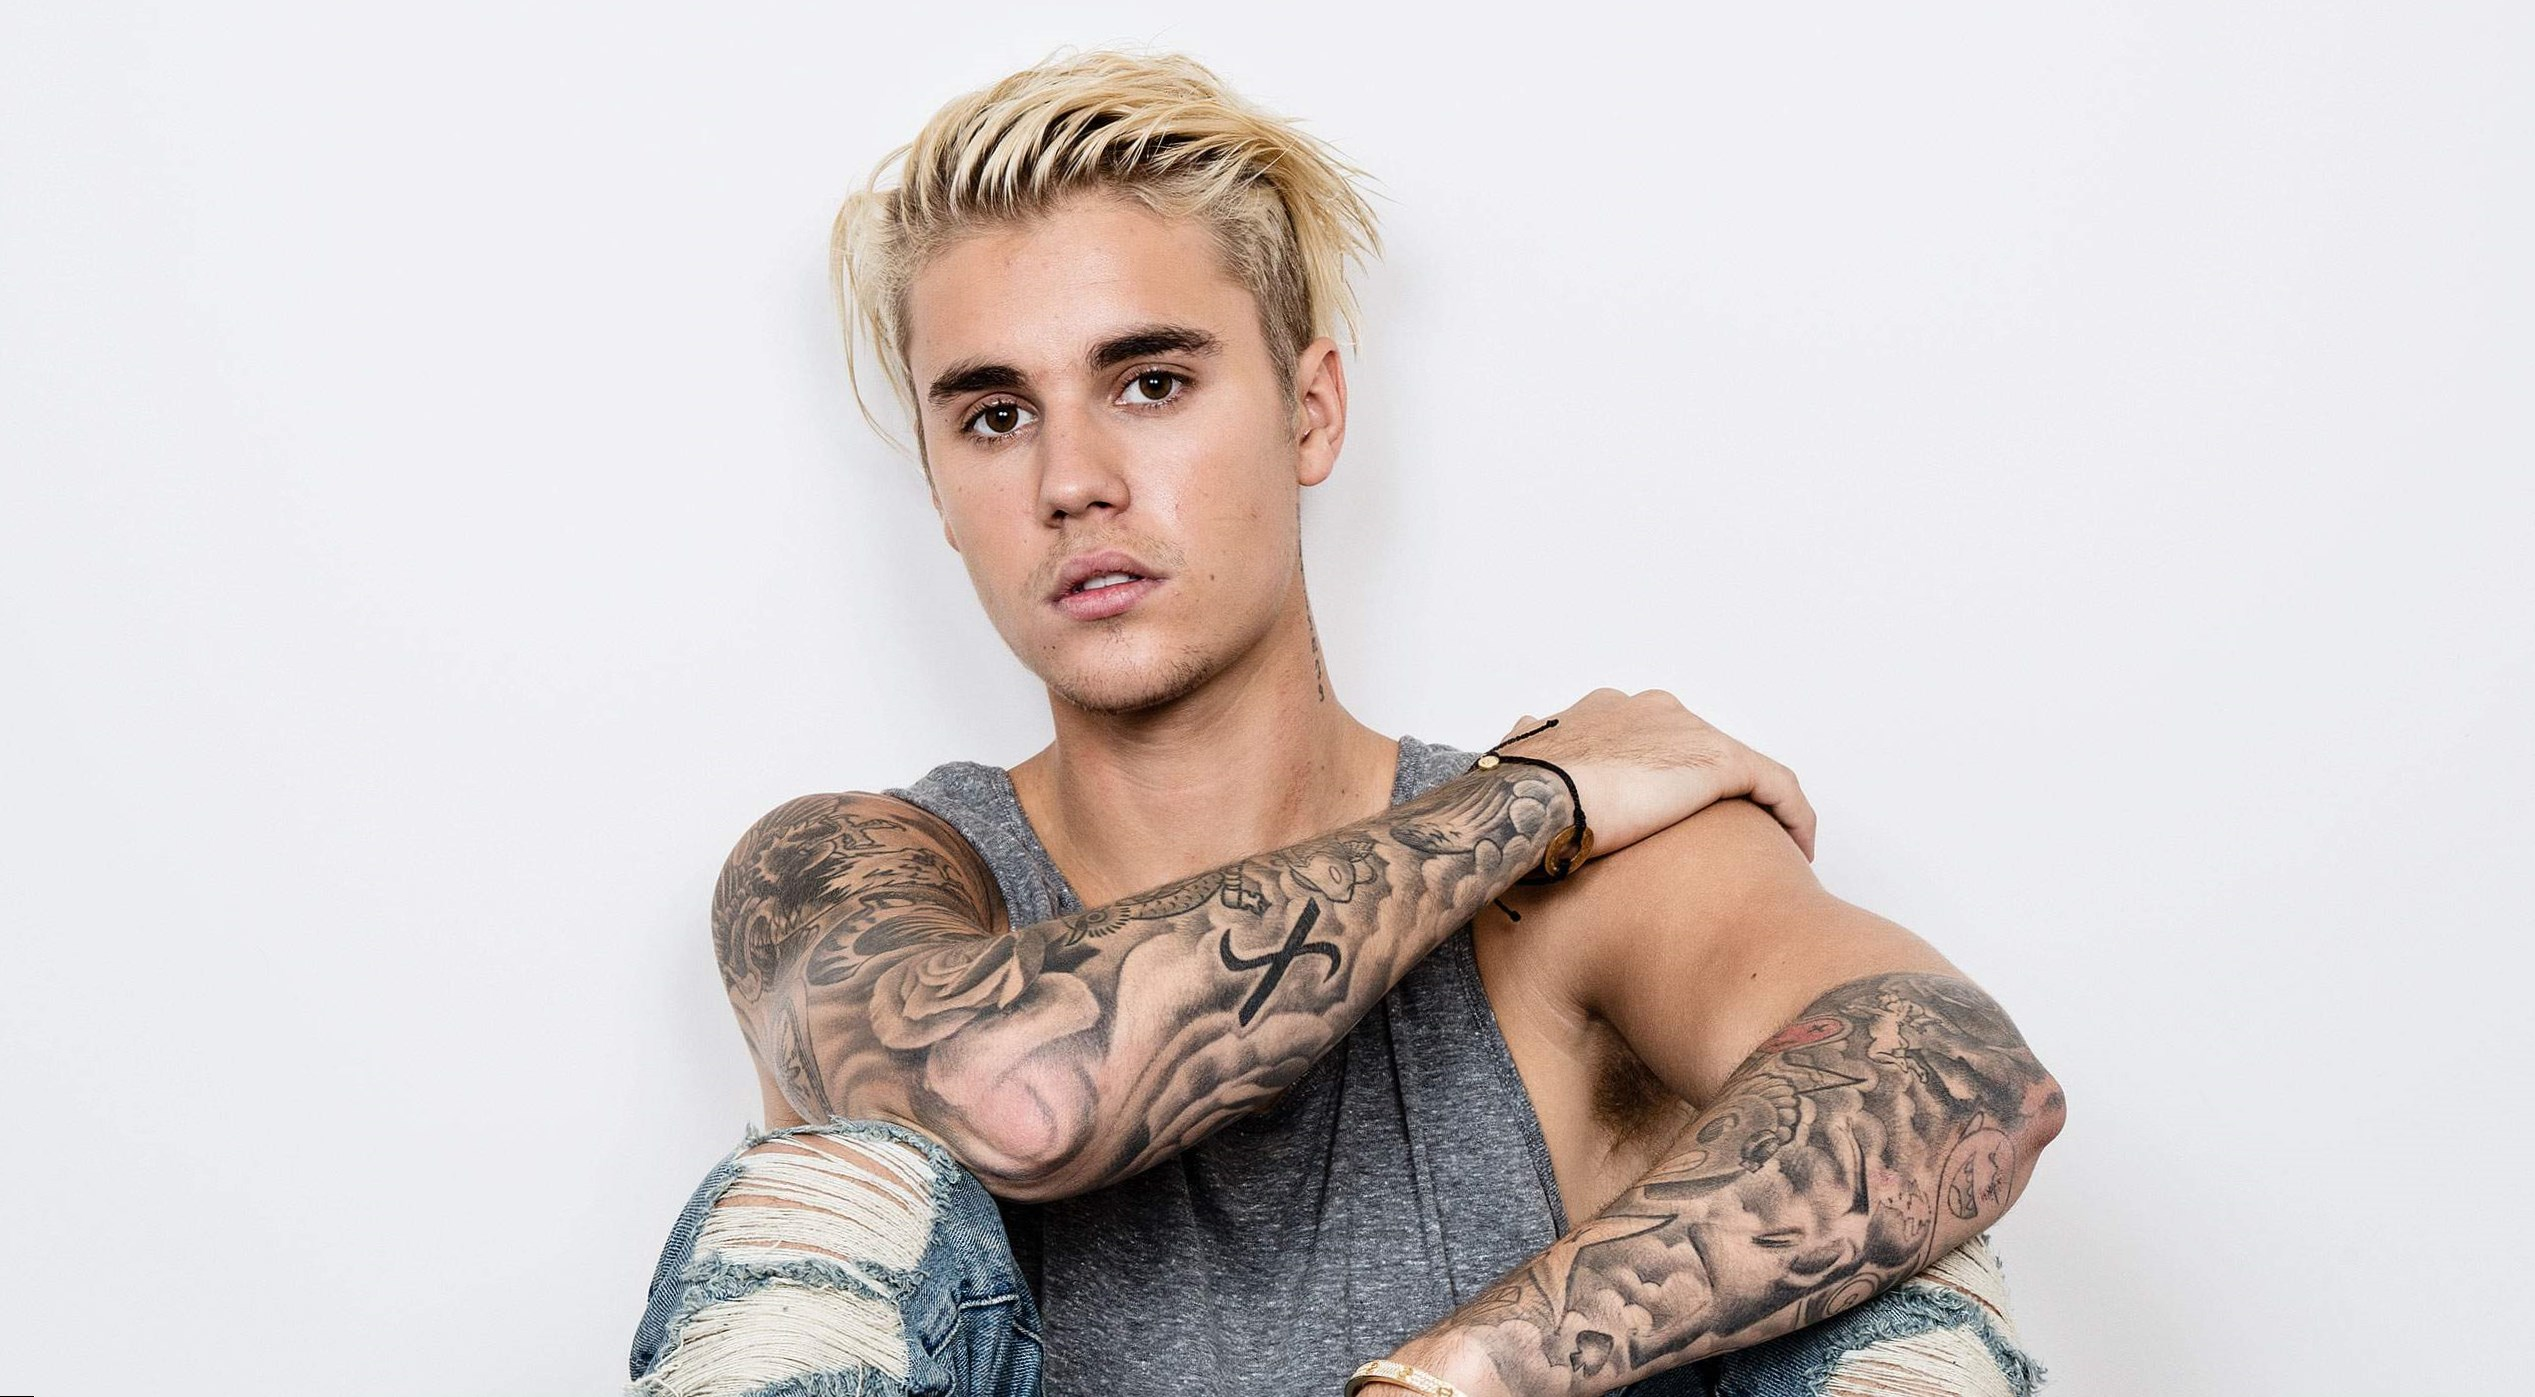 Justin Bieber Top 20 Celebrity Facts